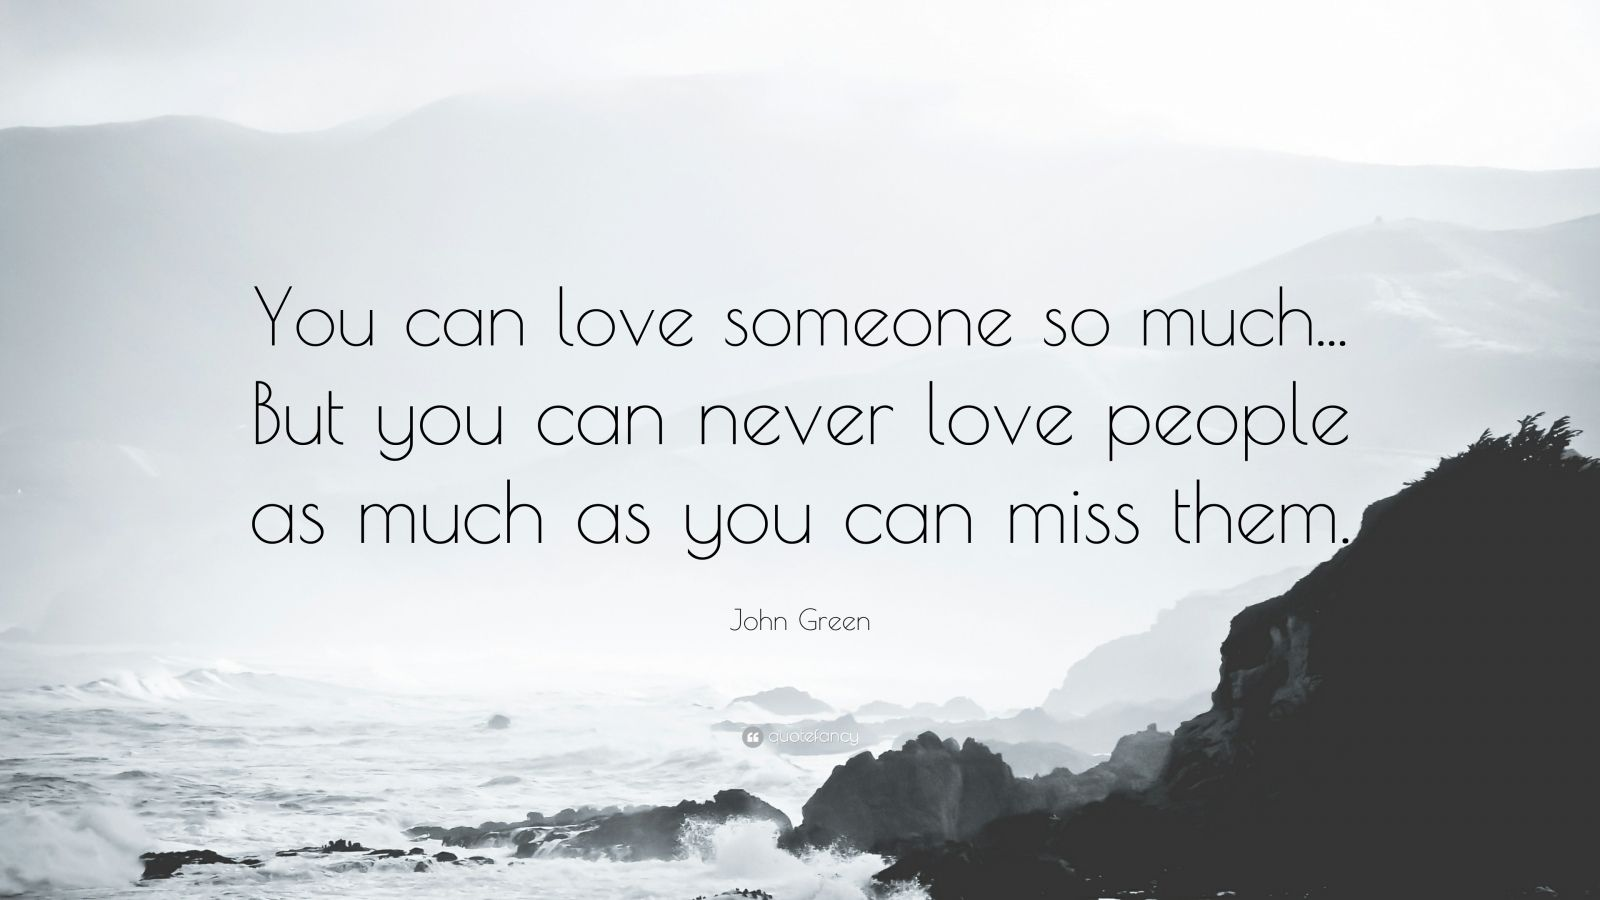 """John Green Quote: """"You can love someone so much... But you can never love people as much as you can miss them."""""""